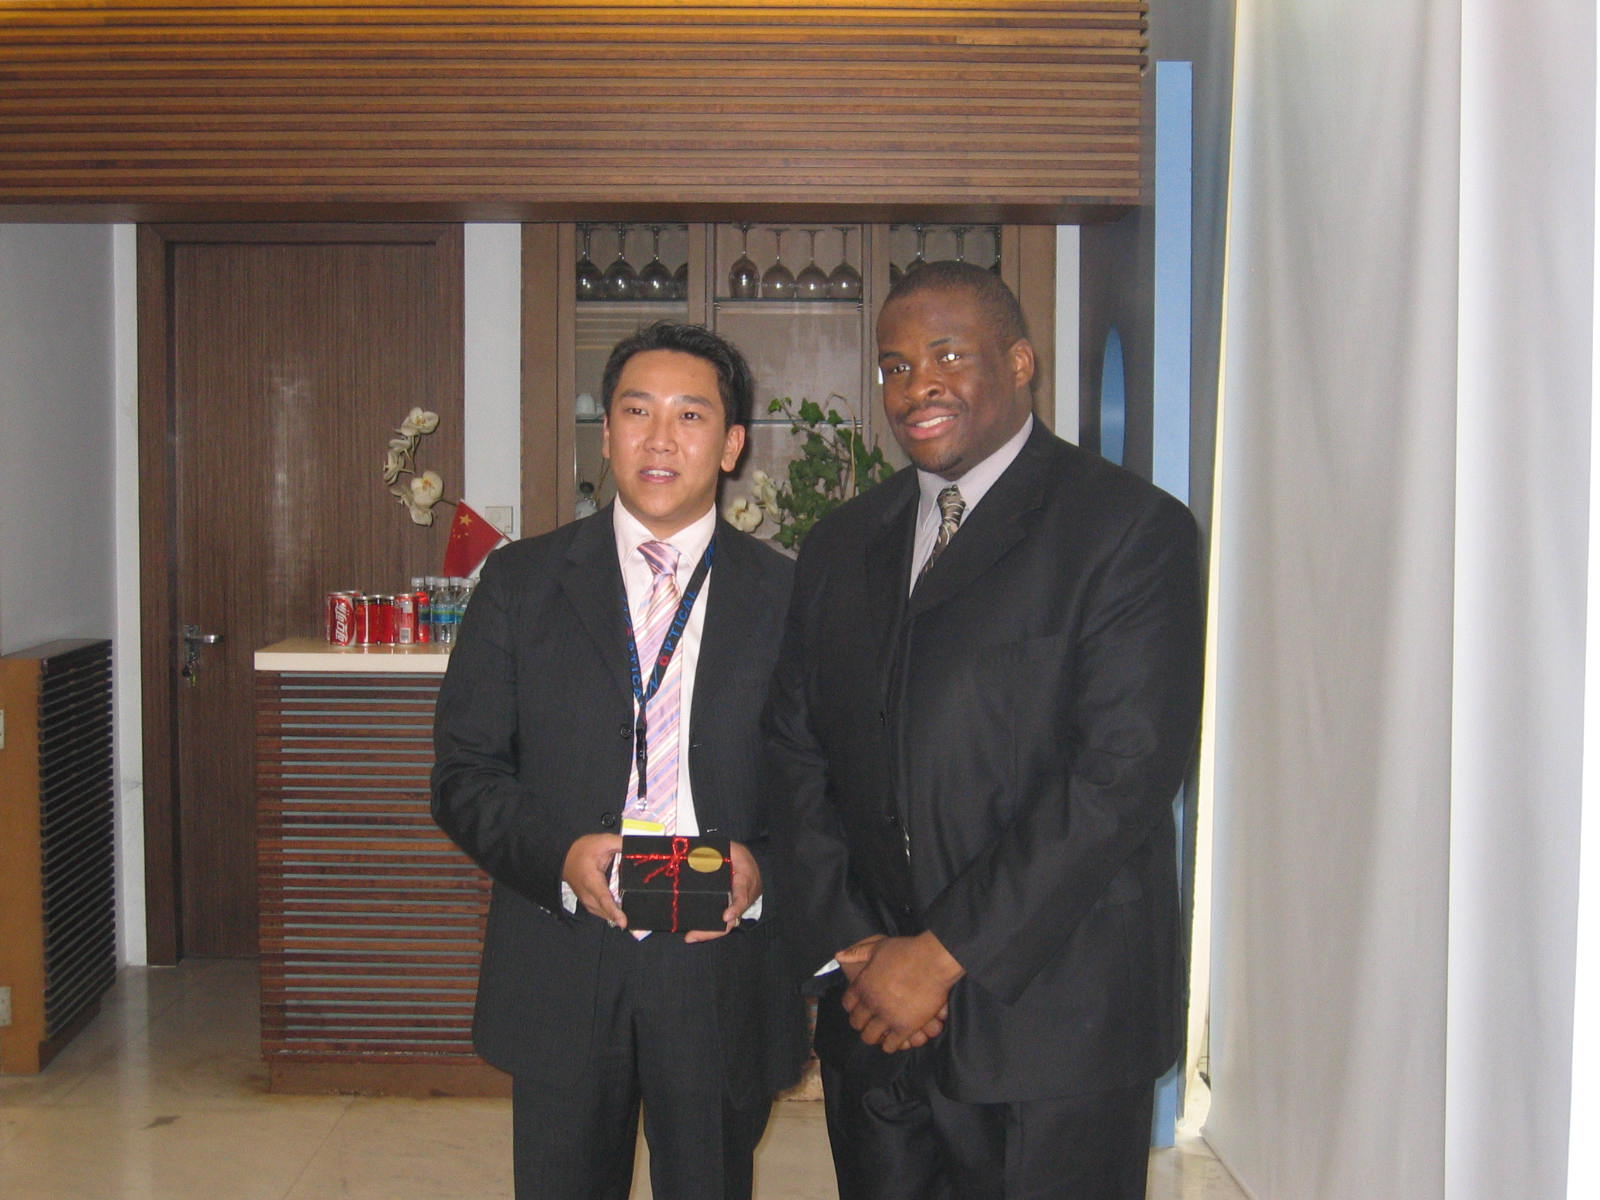 Davian and Mr. Cheung